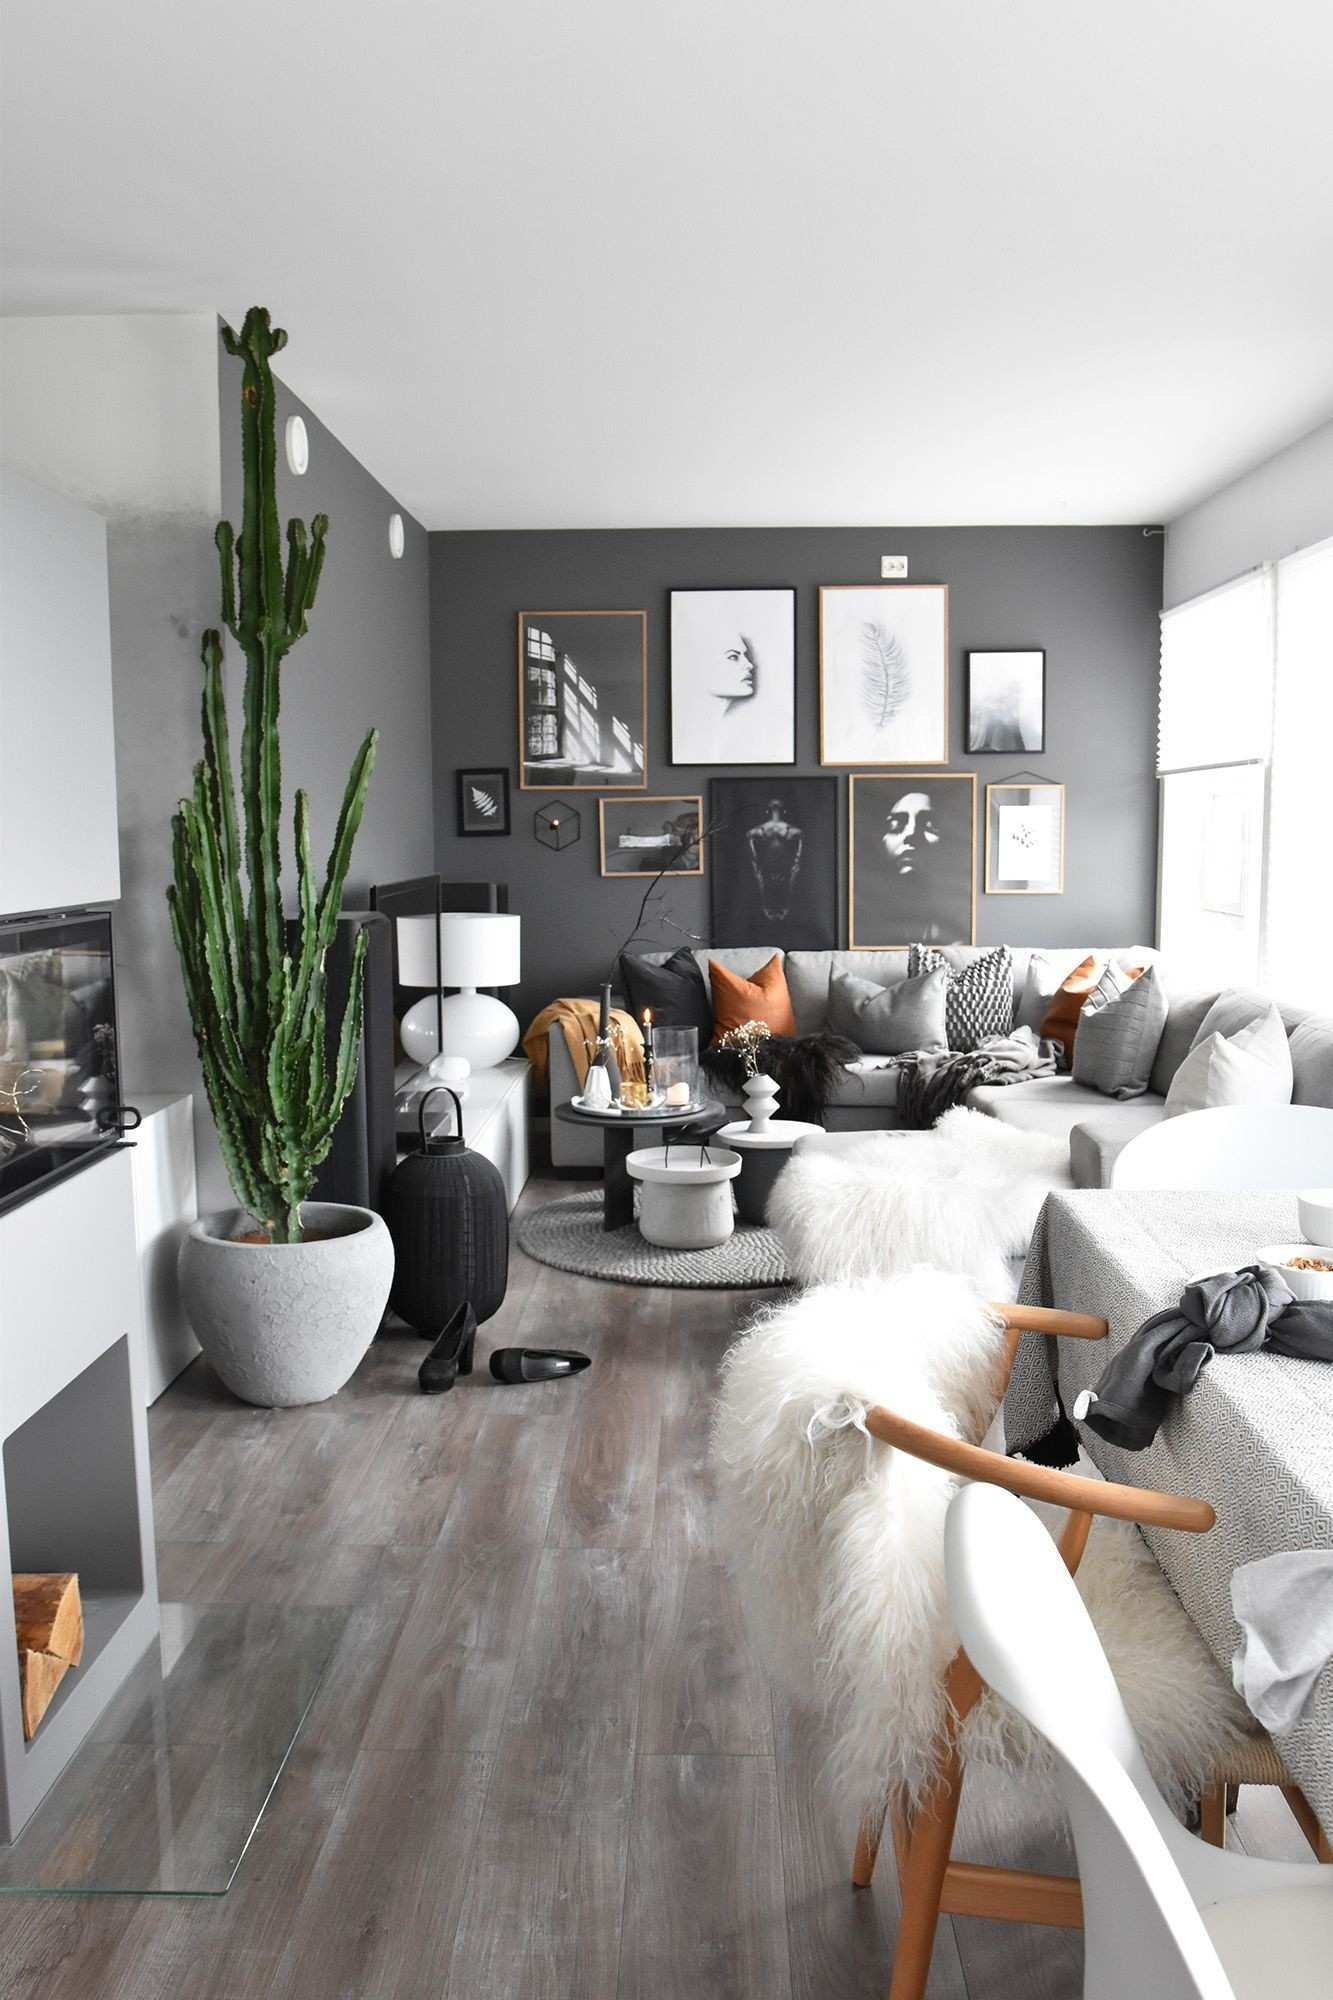 Fetching Wall Collage Ideas Living Room Full Size Decor 9